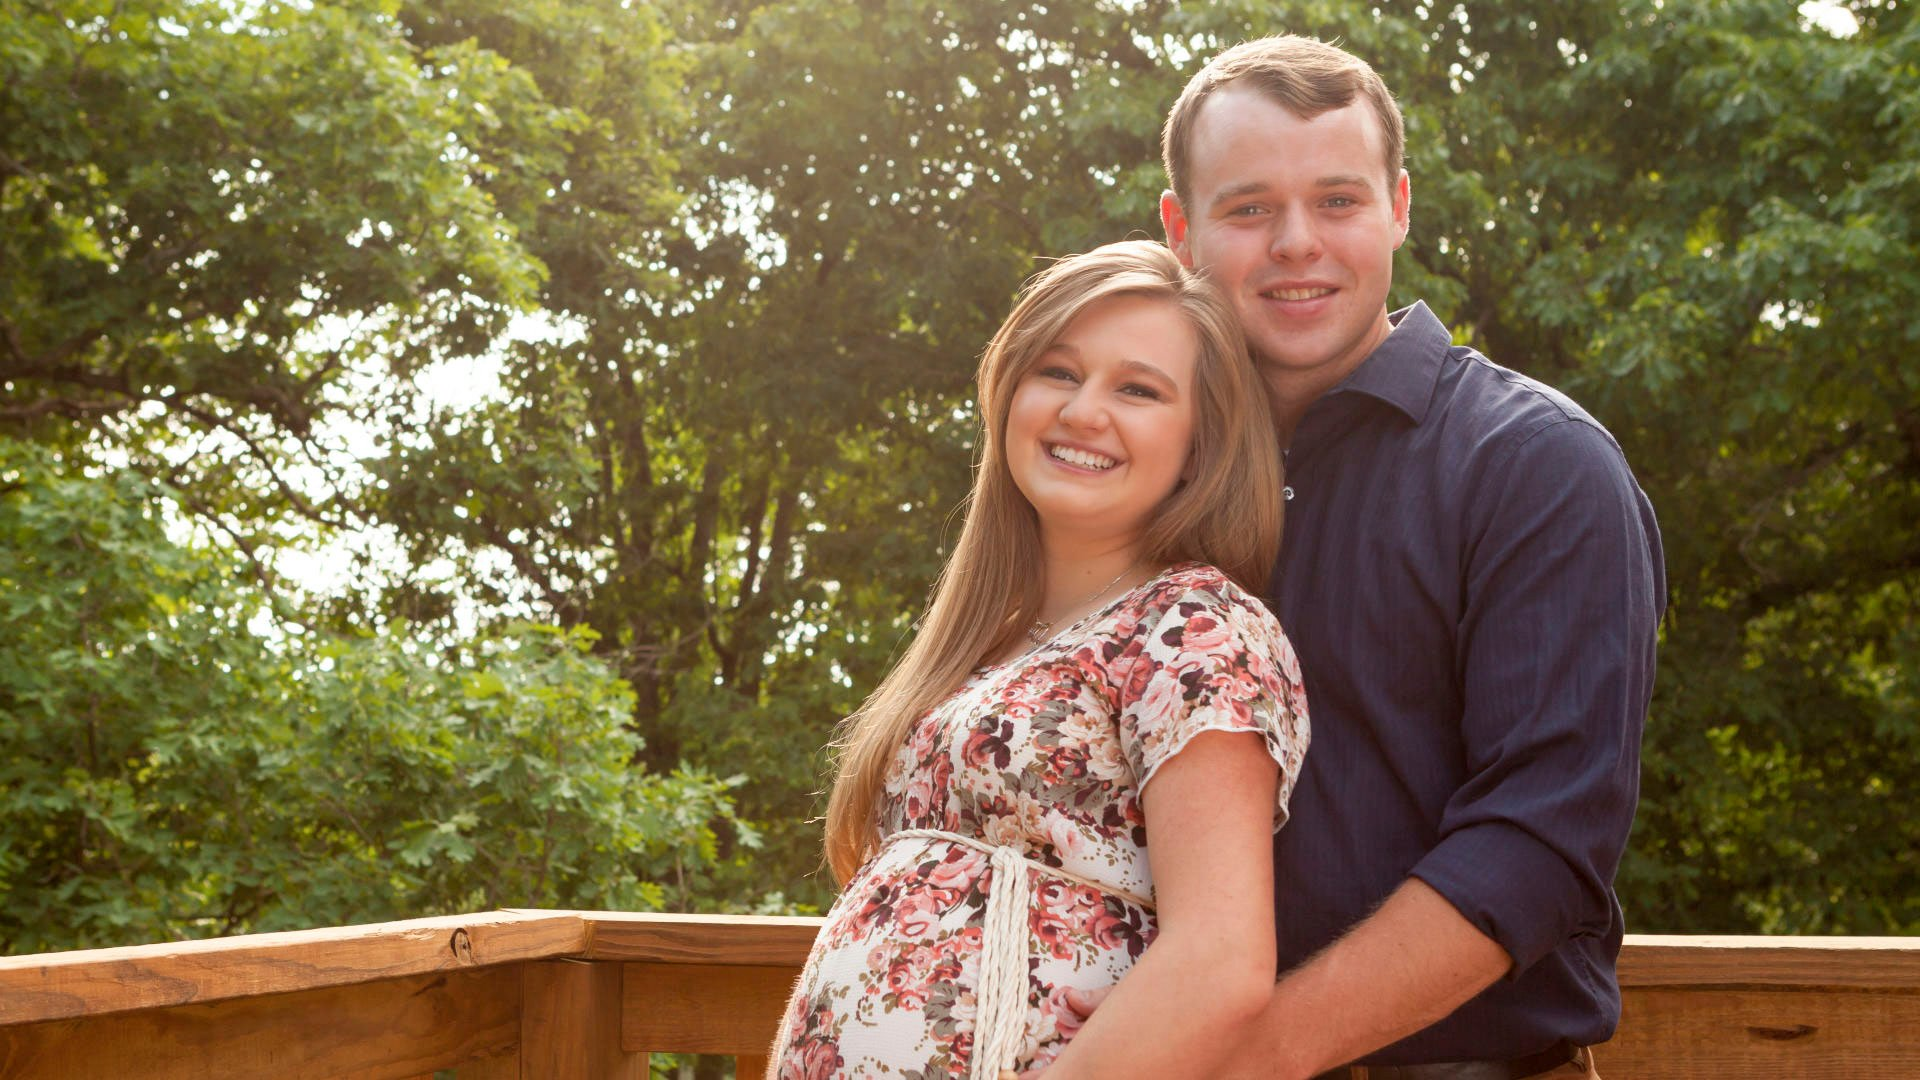 Joseph And Kendra Duggar Welcome Their 3rd Child Together!